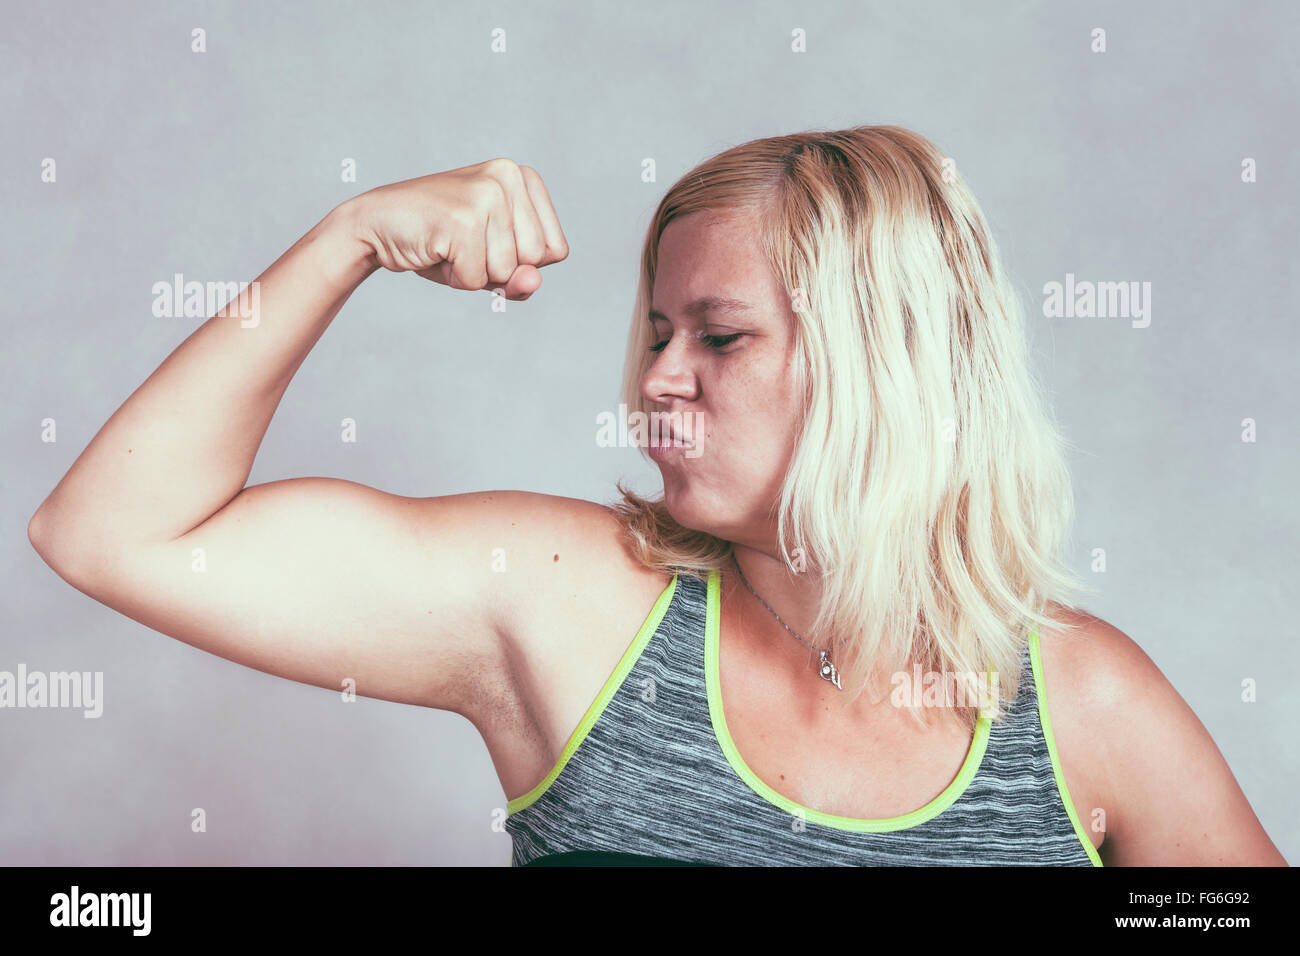 Strong confident muscular woman flexing her muscles. Young blond sporty female showing arm and biceps. - Stock Image